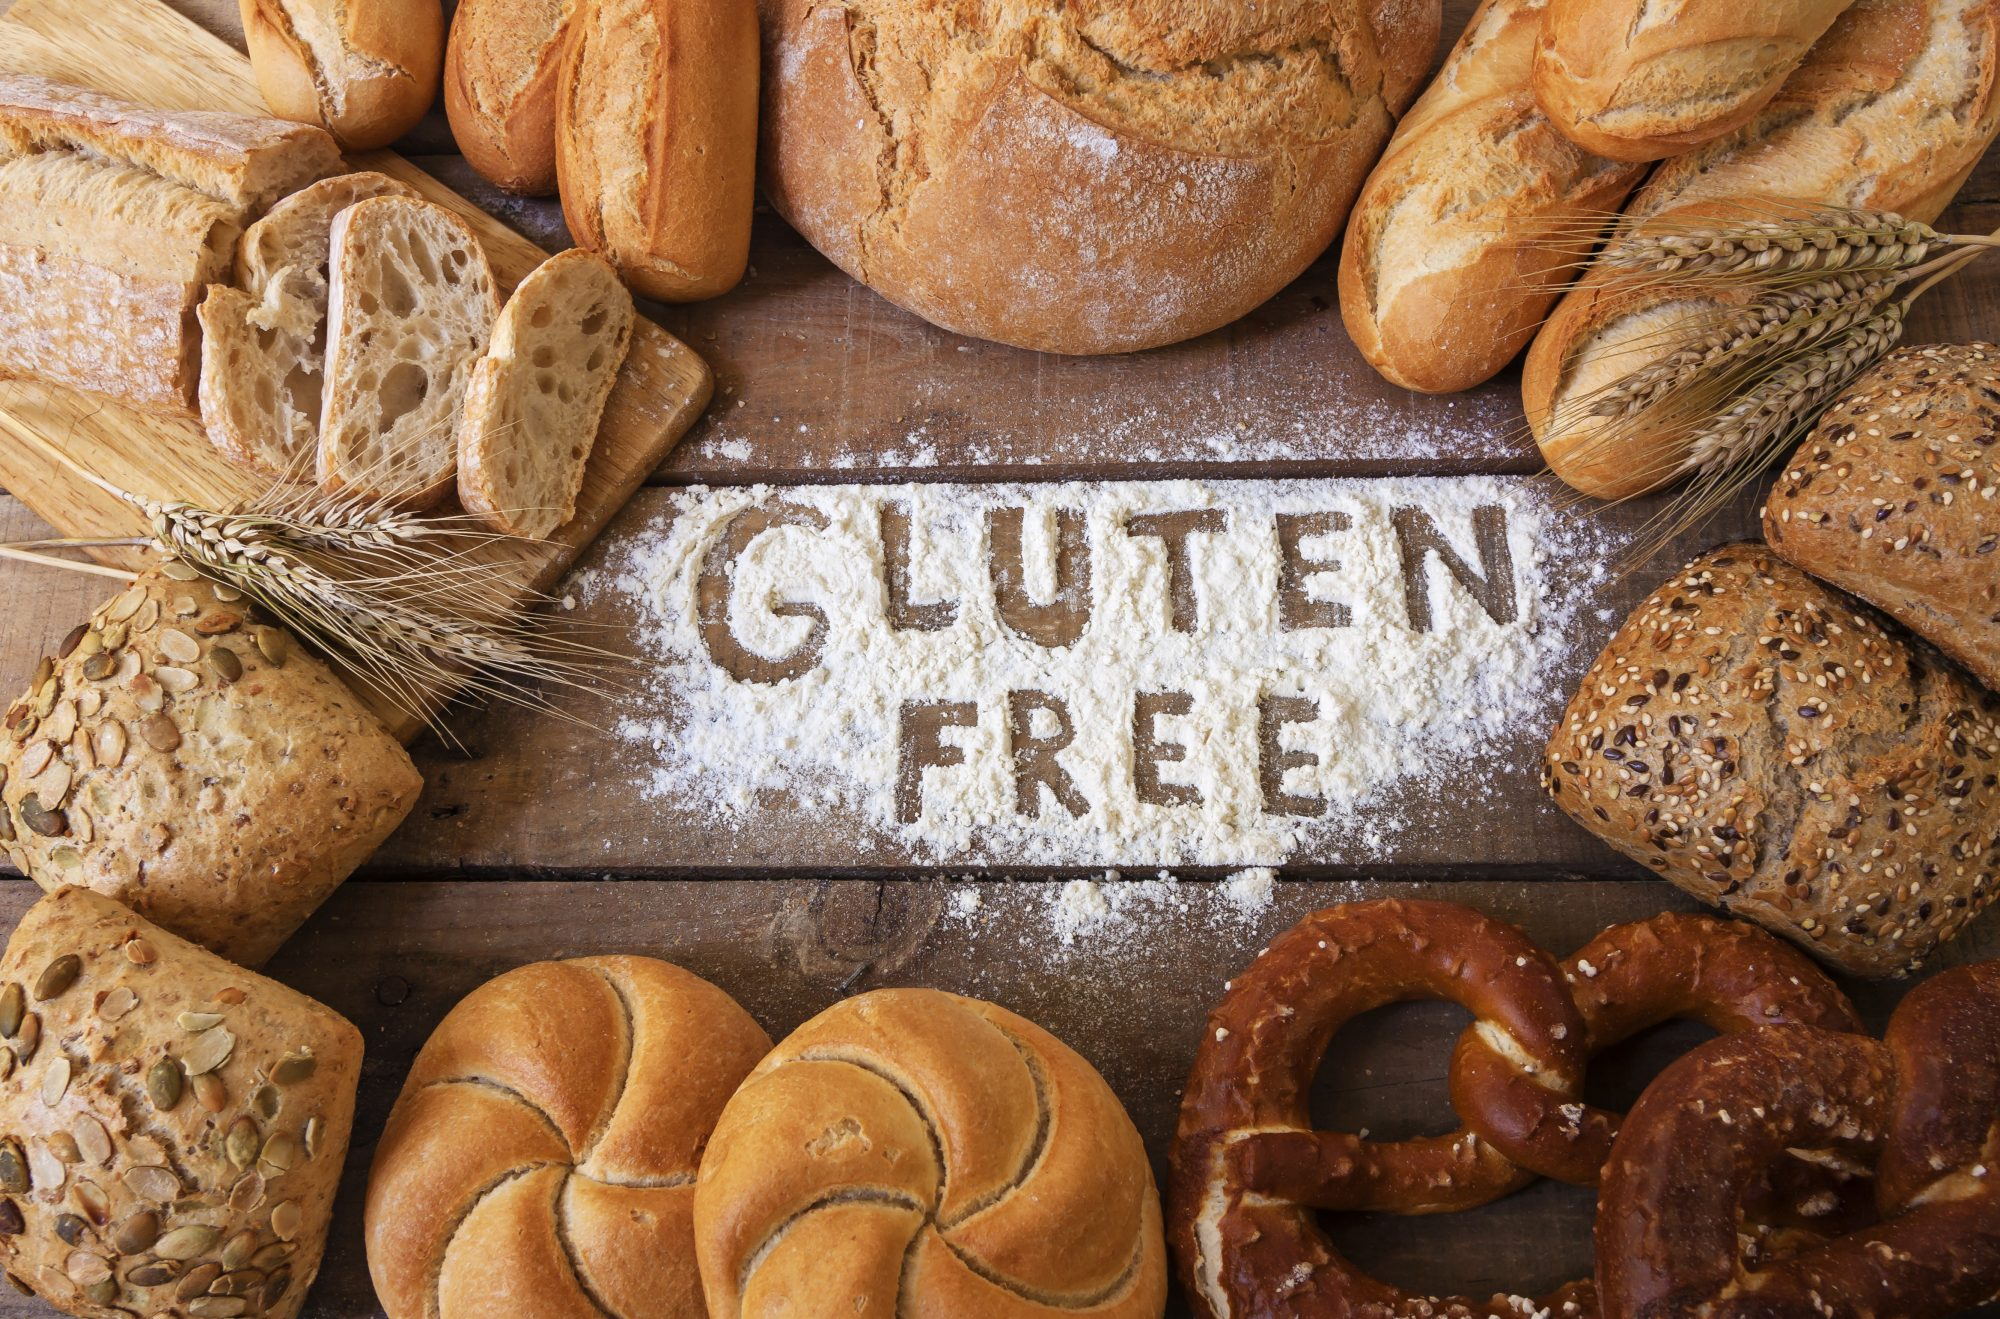 Myth: Nixing gluten results in weight loss